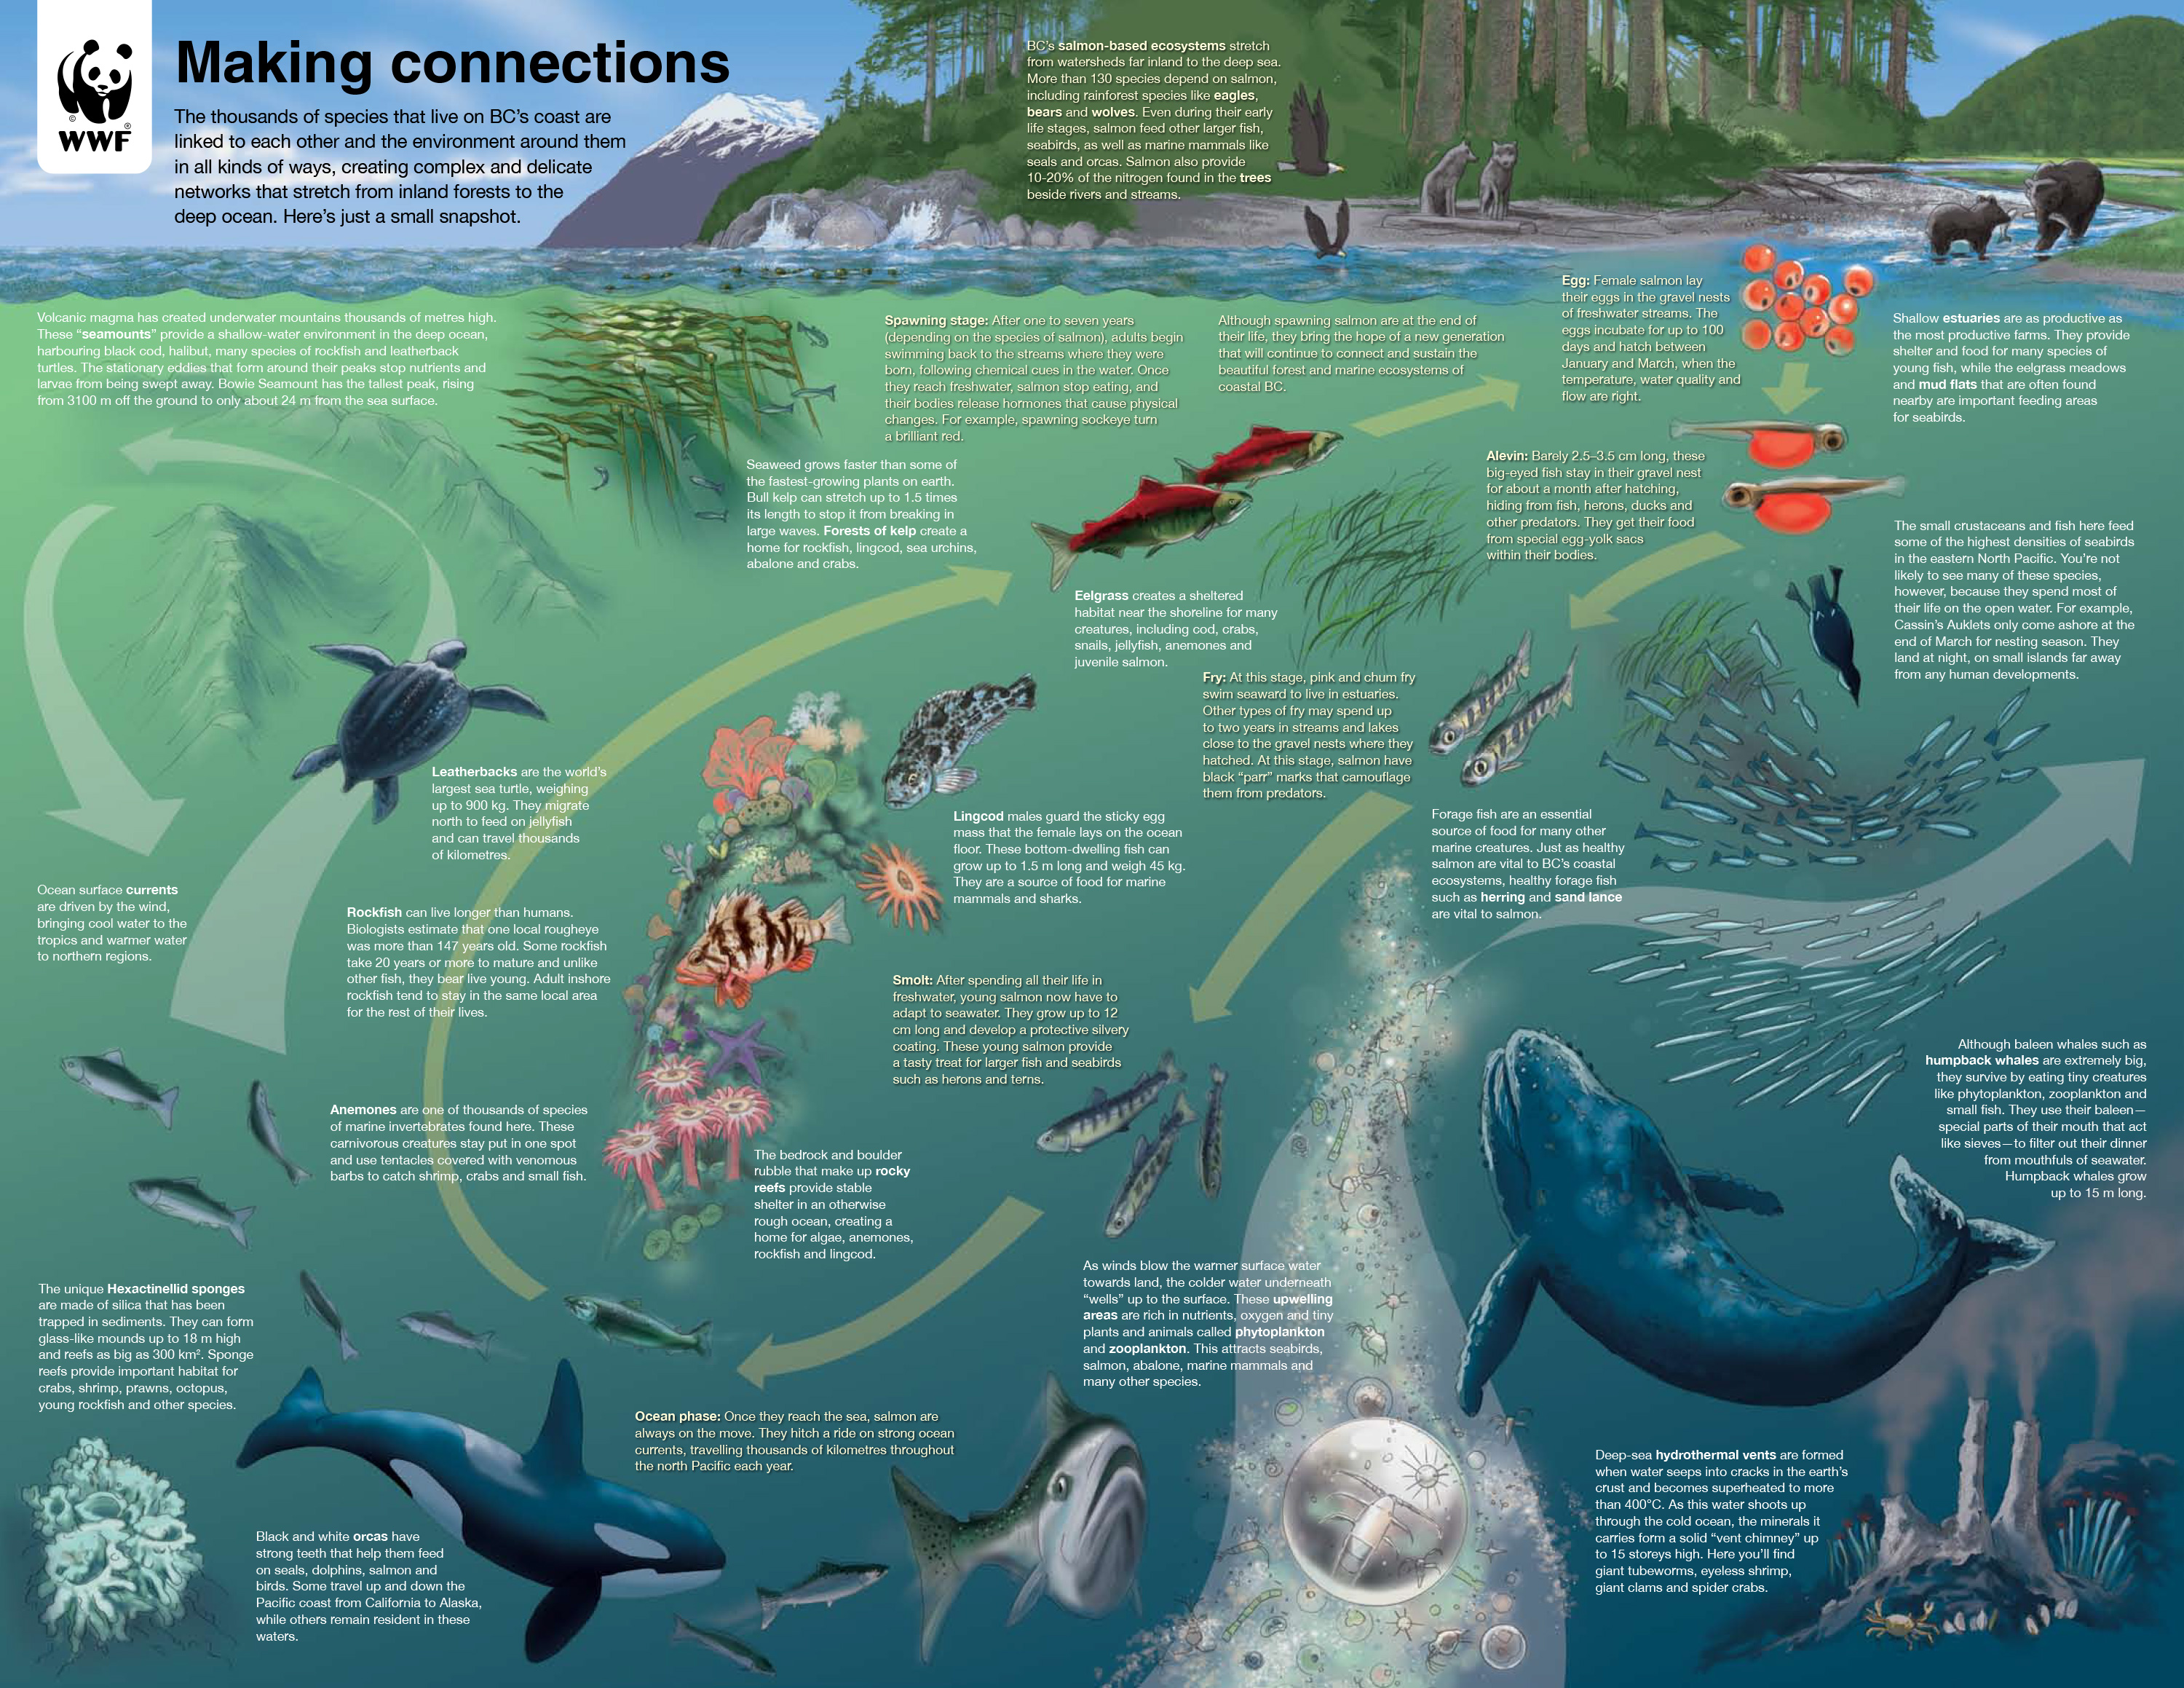 Bc marine life cycle diagram watershed moment wwf bc marine life cycle diagram ccuart Choice Image